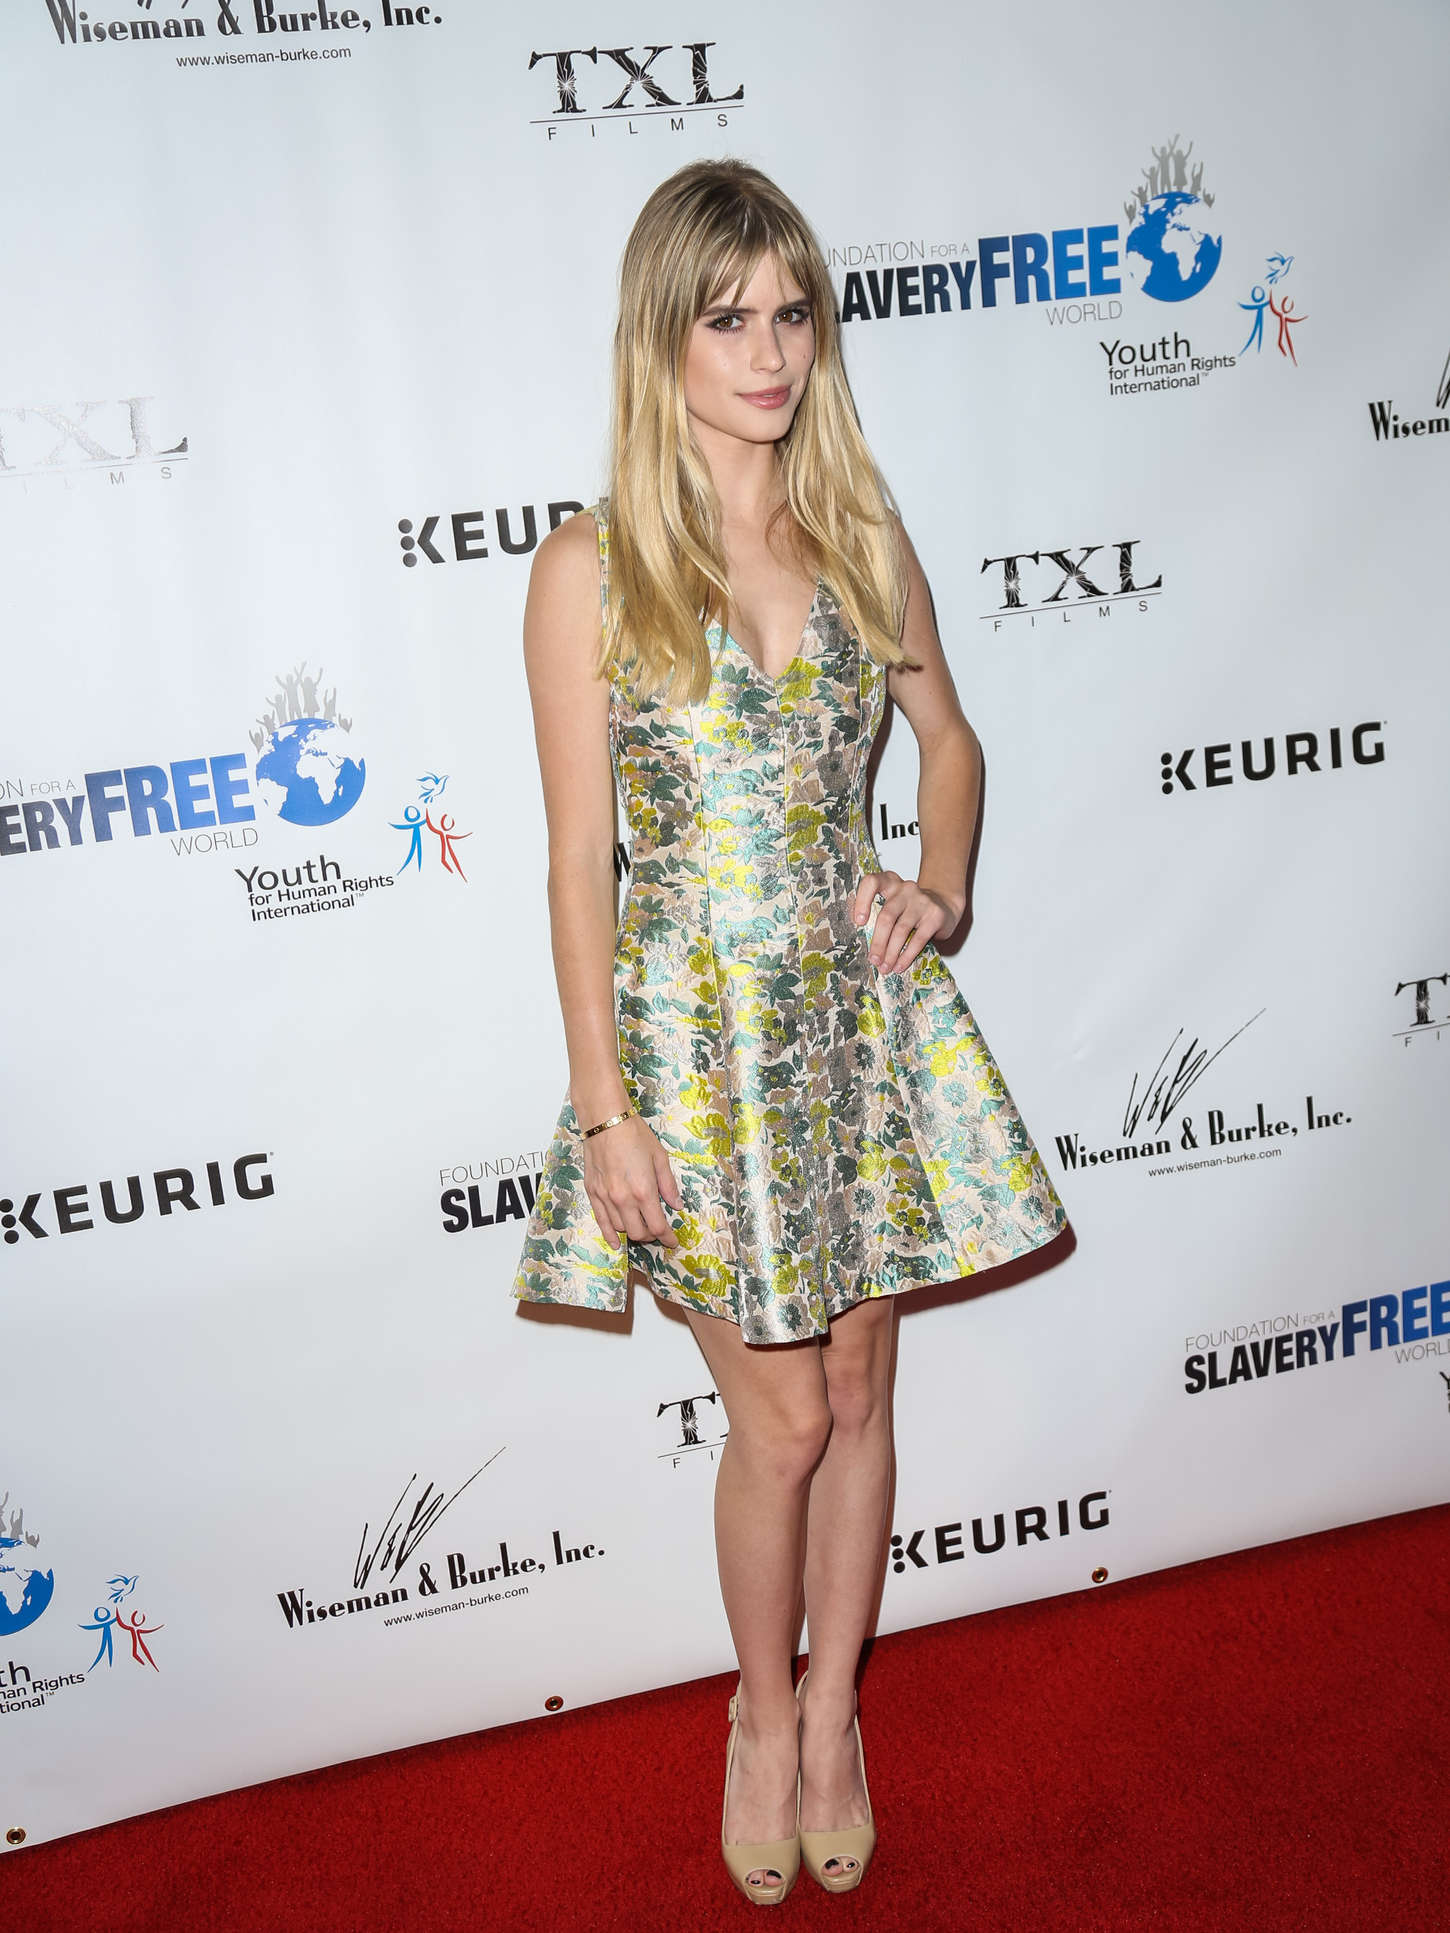 Carlson Young The Human Rights Hero Awards in Hollywood